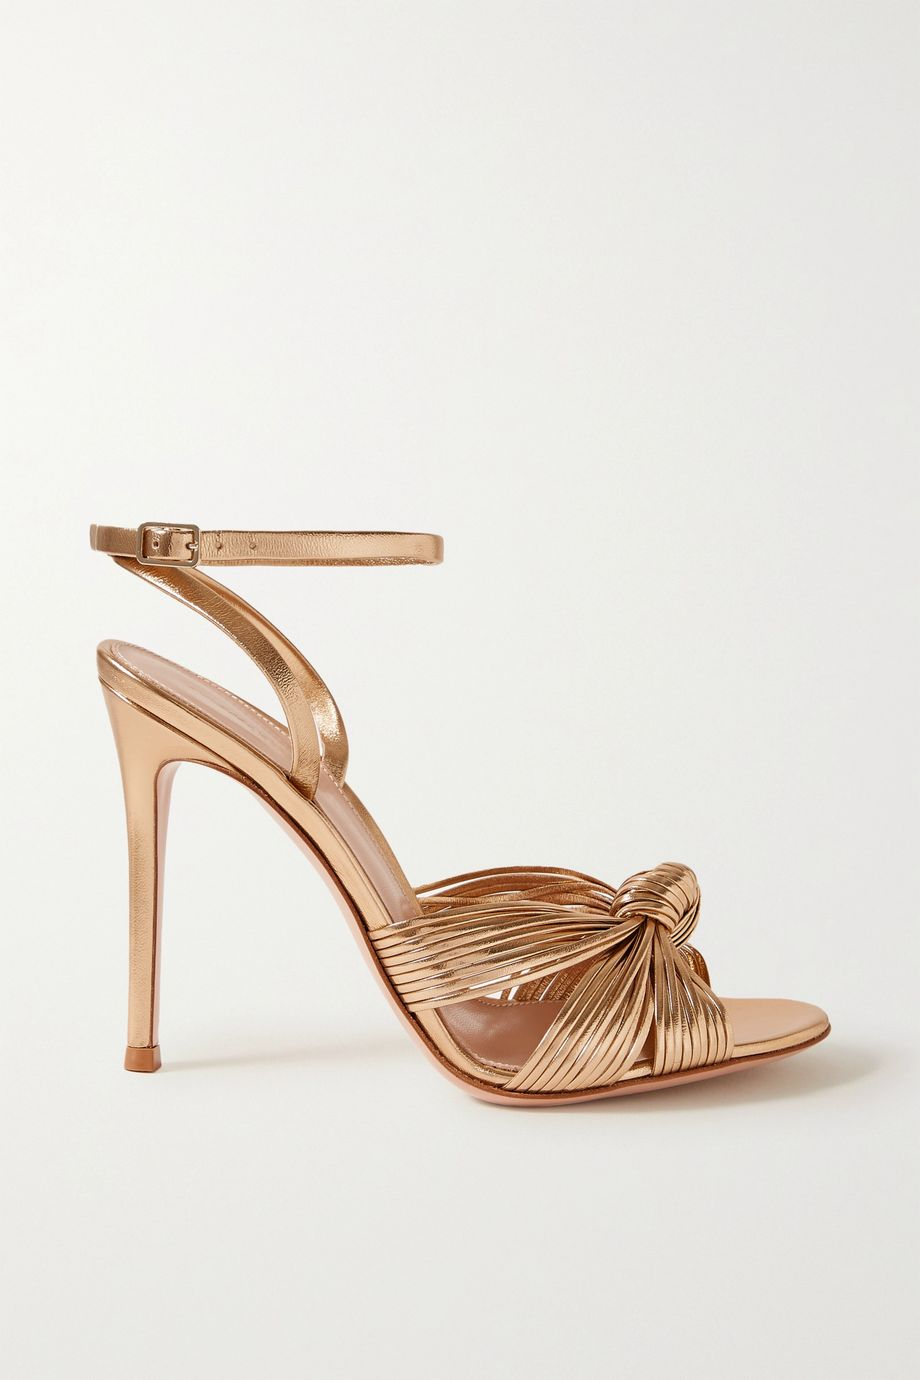 Gianvito Rossi Portia 105 knotted metallic leather sandals